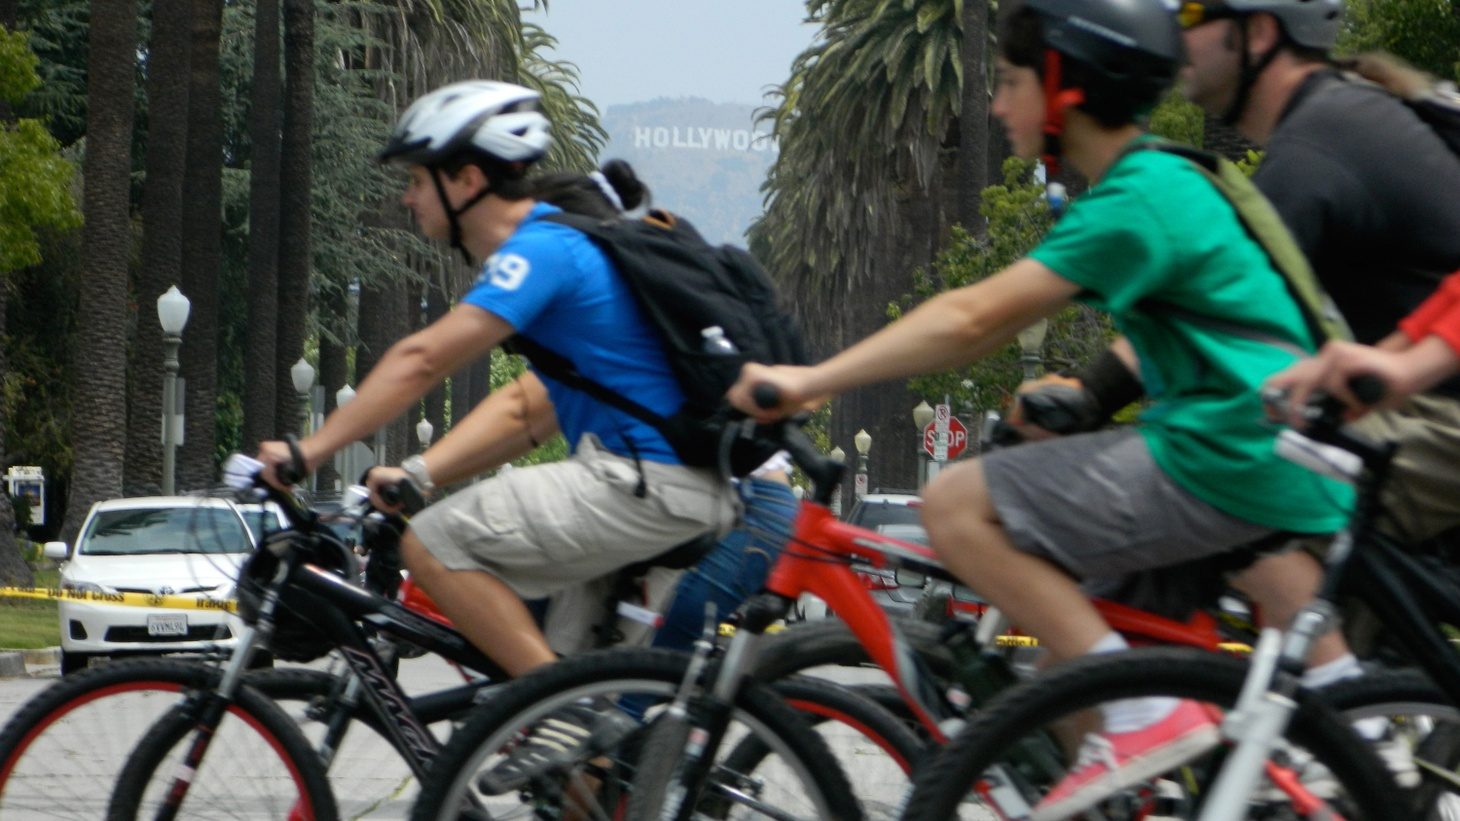 """Kids in California have been required to wear bicycle helmets for 21 years. In Sacramento, the Senate is considering the first state law in the nation to mandate helmets for adults who cycle, too. Despite studies showing """"substantial protection"""" from injuries in accidents, the California Bicycle Coalition is up in arms. We find out why."""